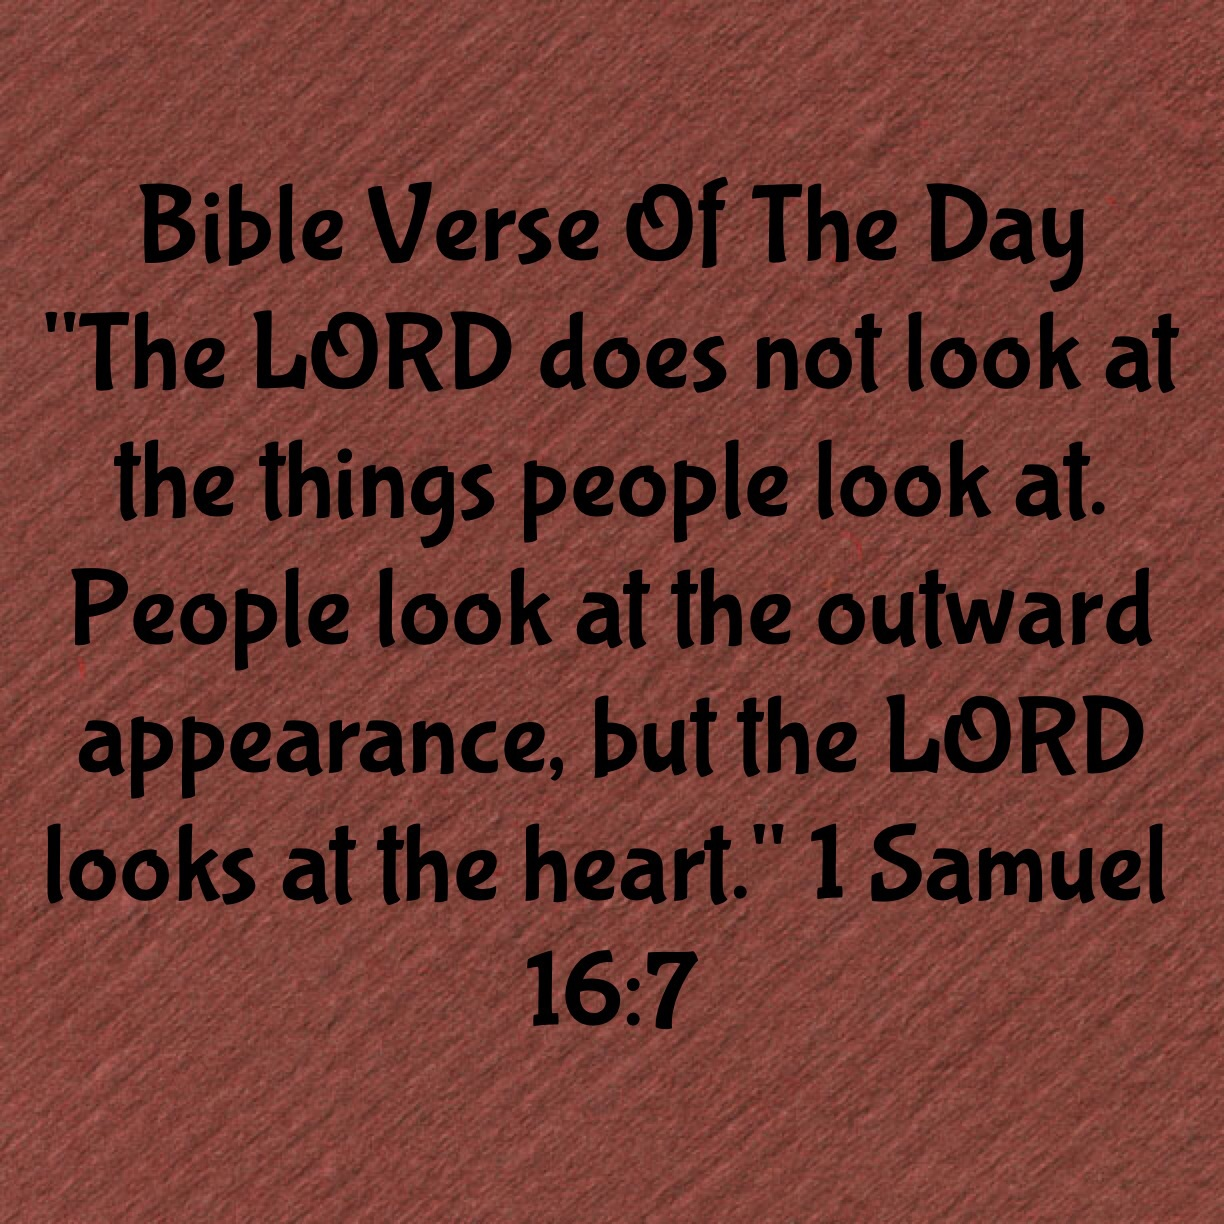 Bible verse of the day why are we so quick to judge lsw image sciox Choice Image